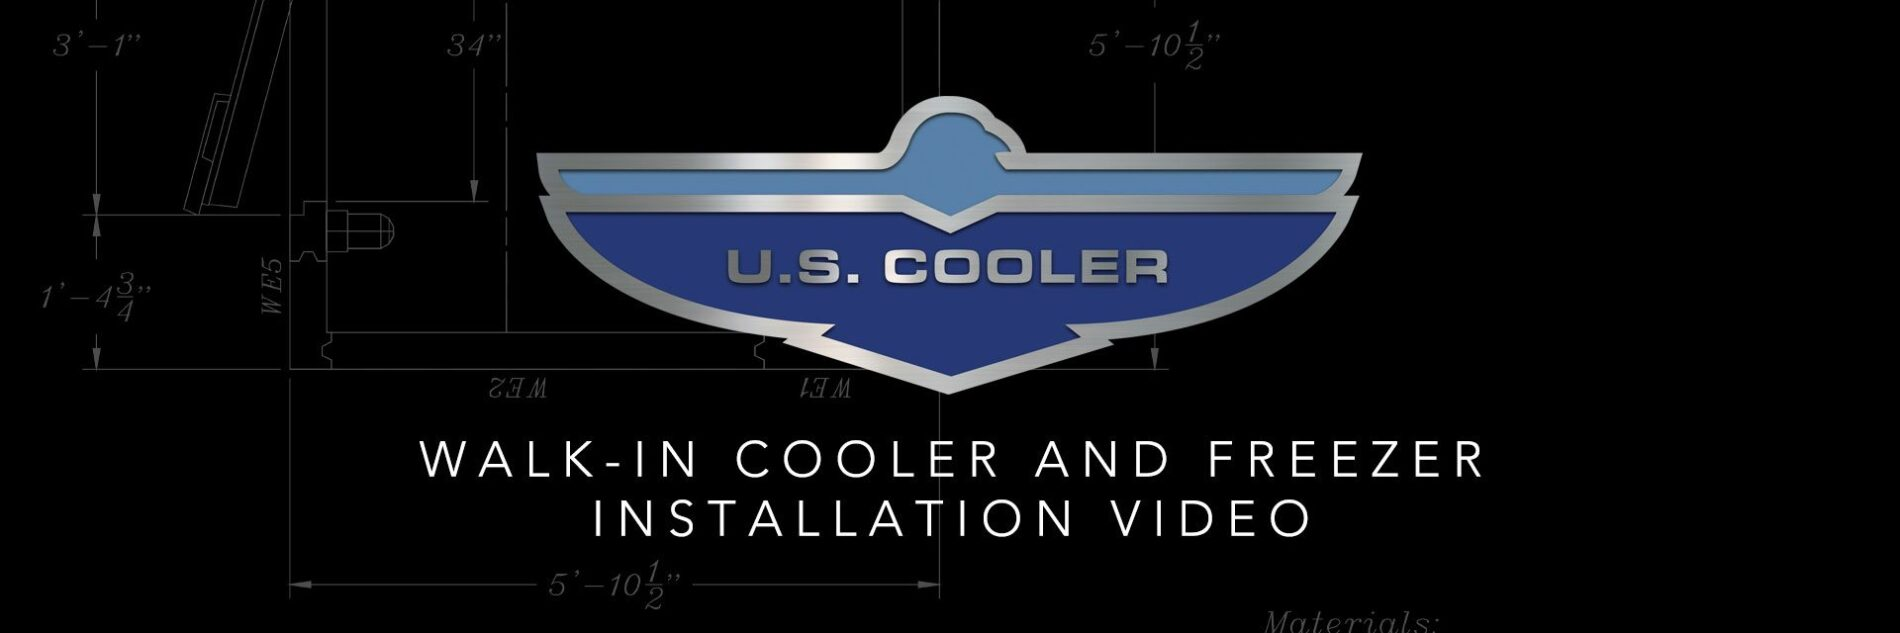 Walk-in cooler and freezer installation video.